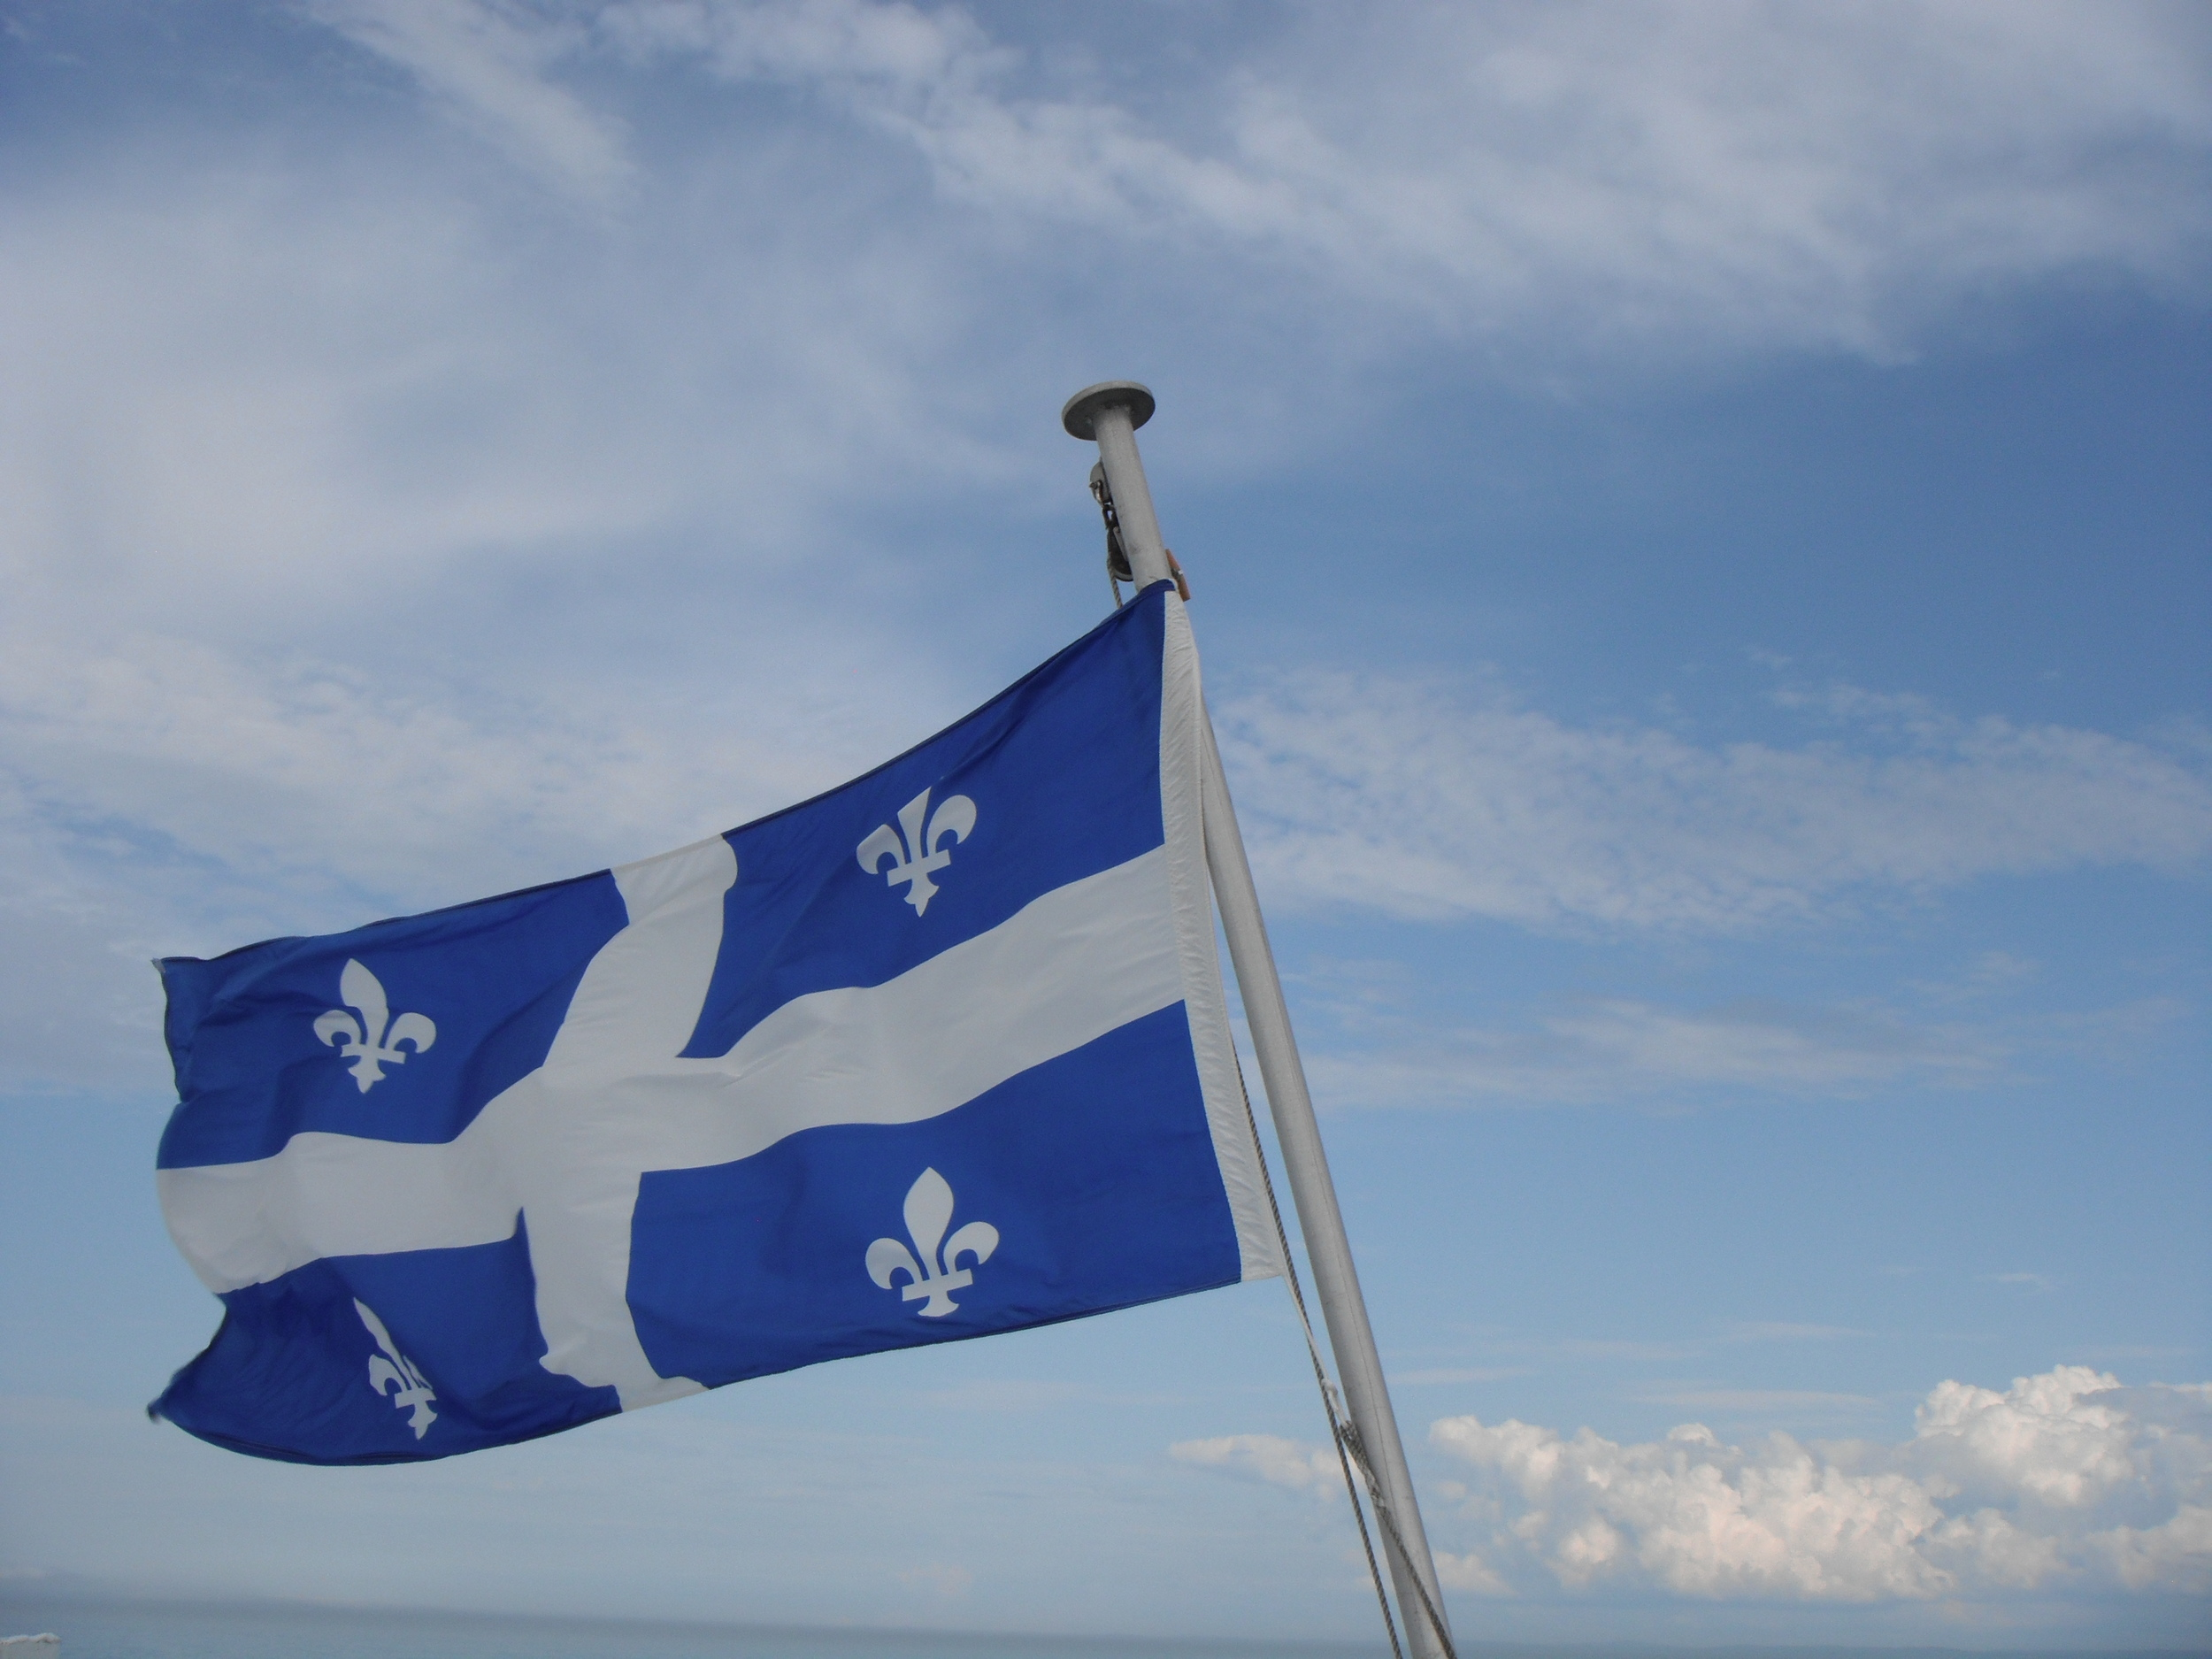 Quebec's flag